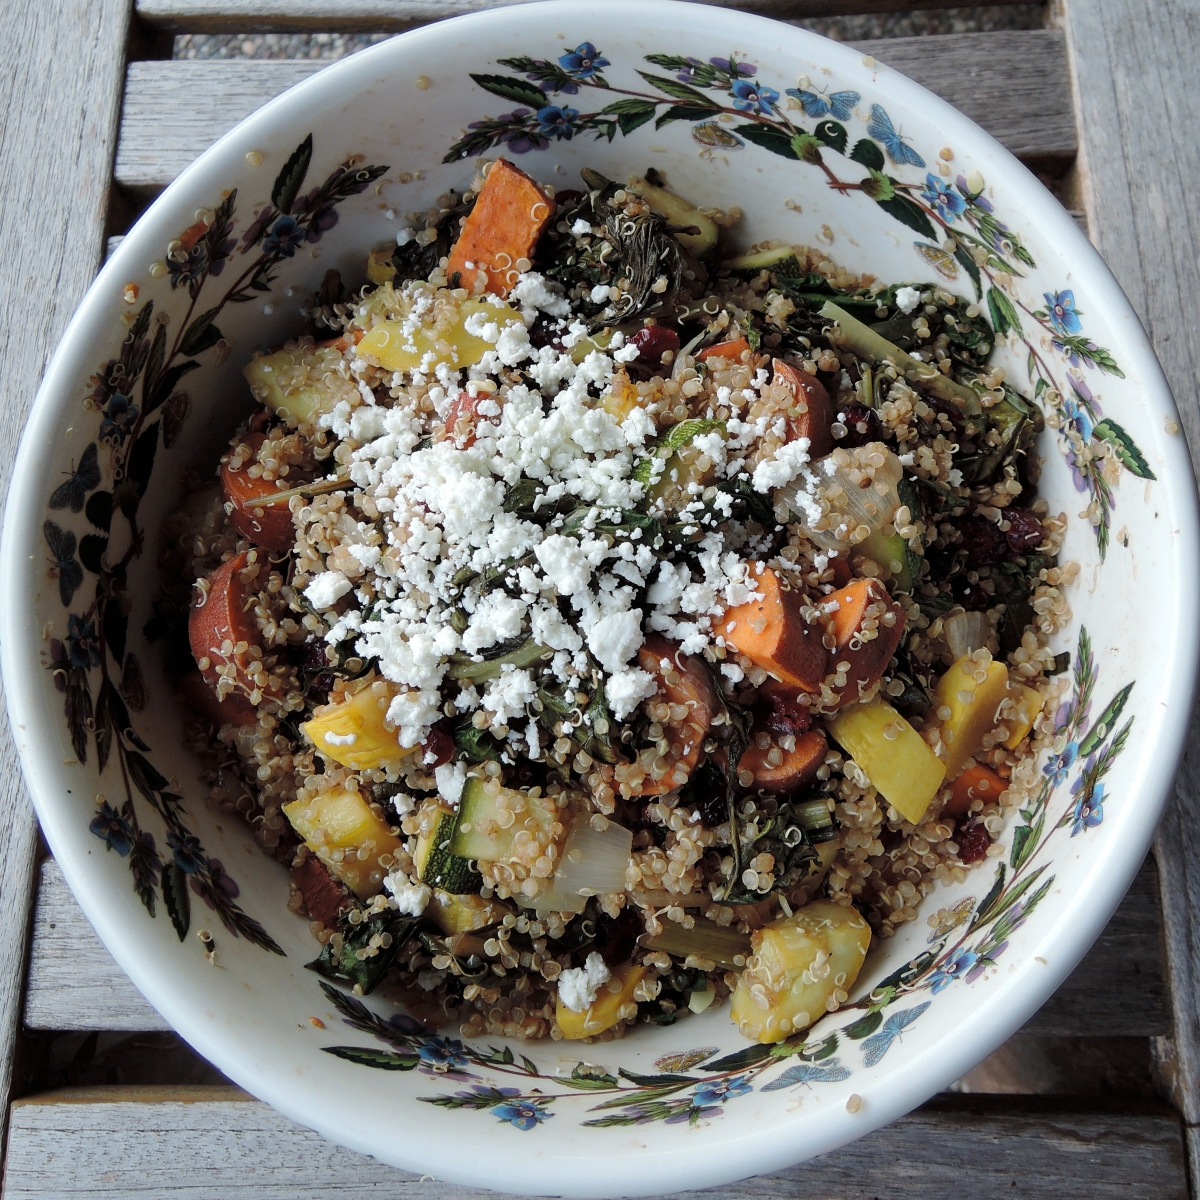 Quinoa Salad with Summer Squash, Swiss Chard, and Sweet Potatoes